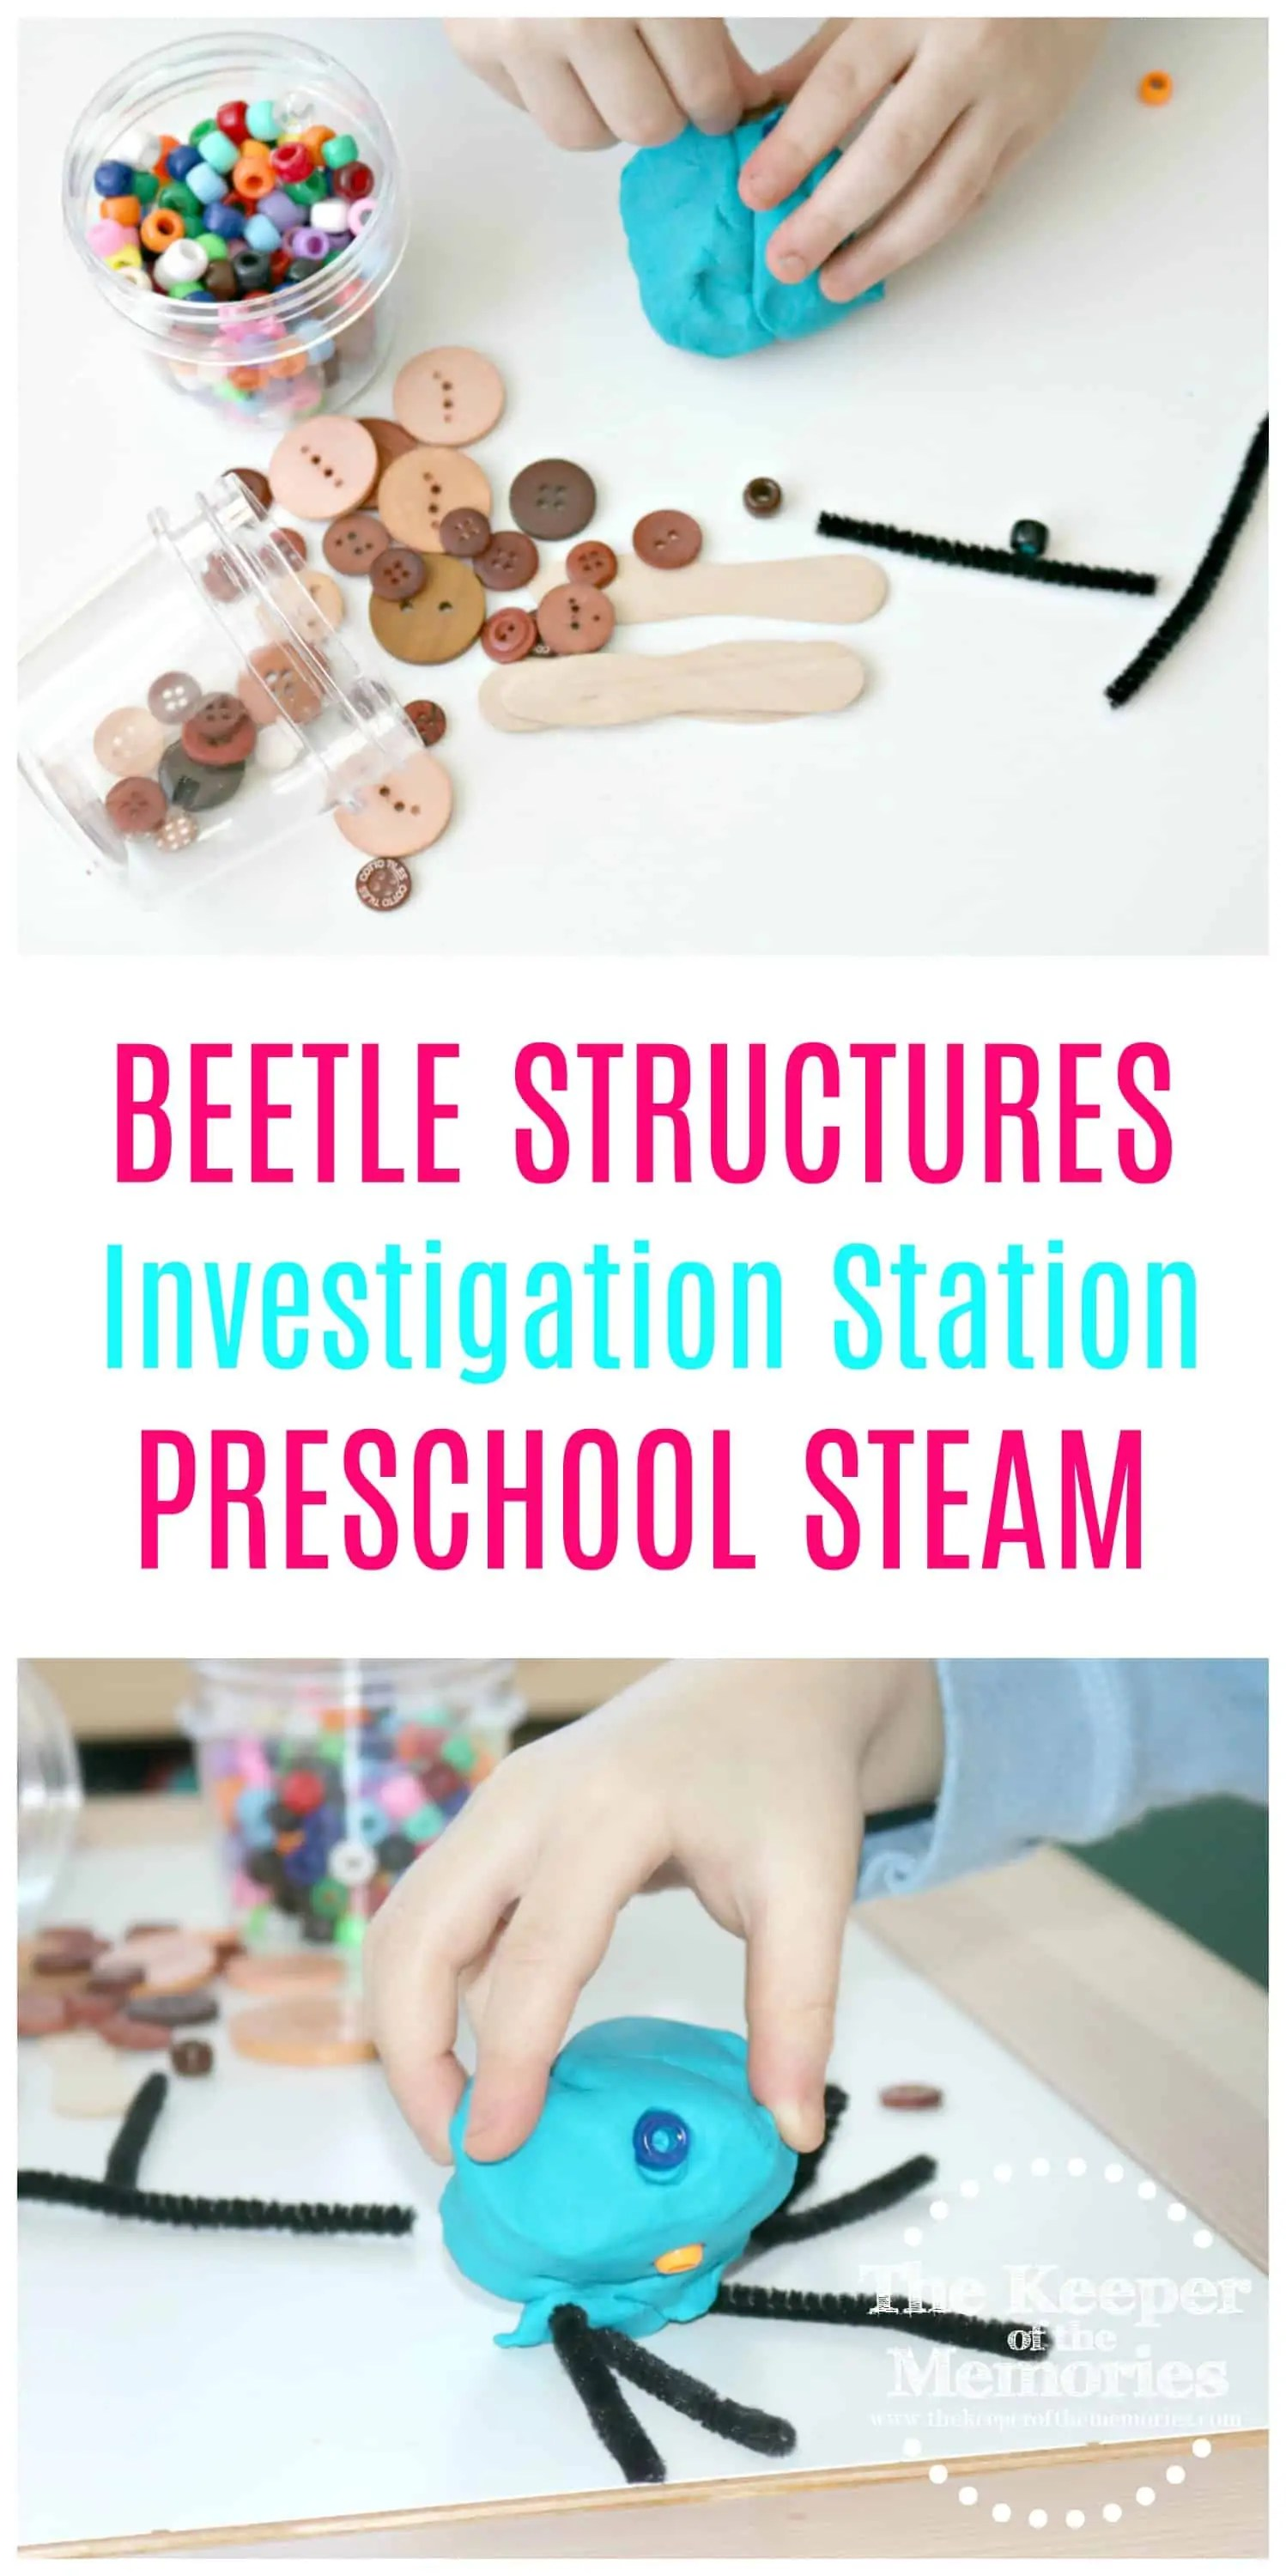 Beetle Structures 2